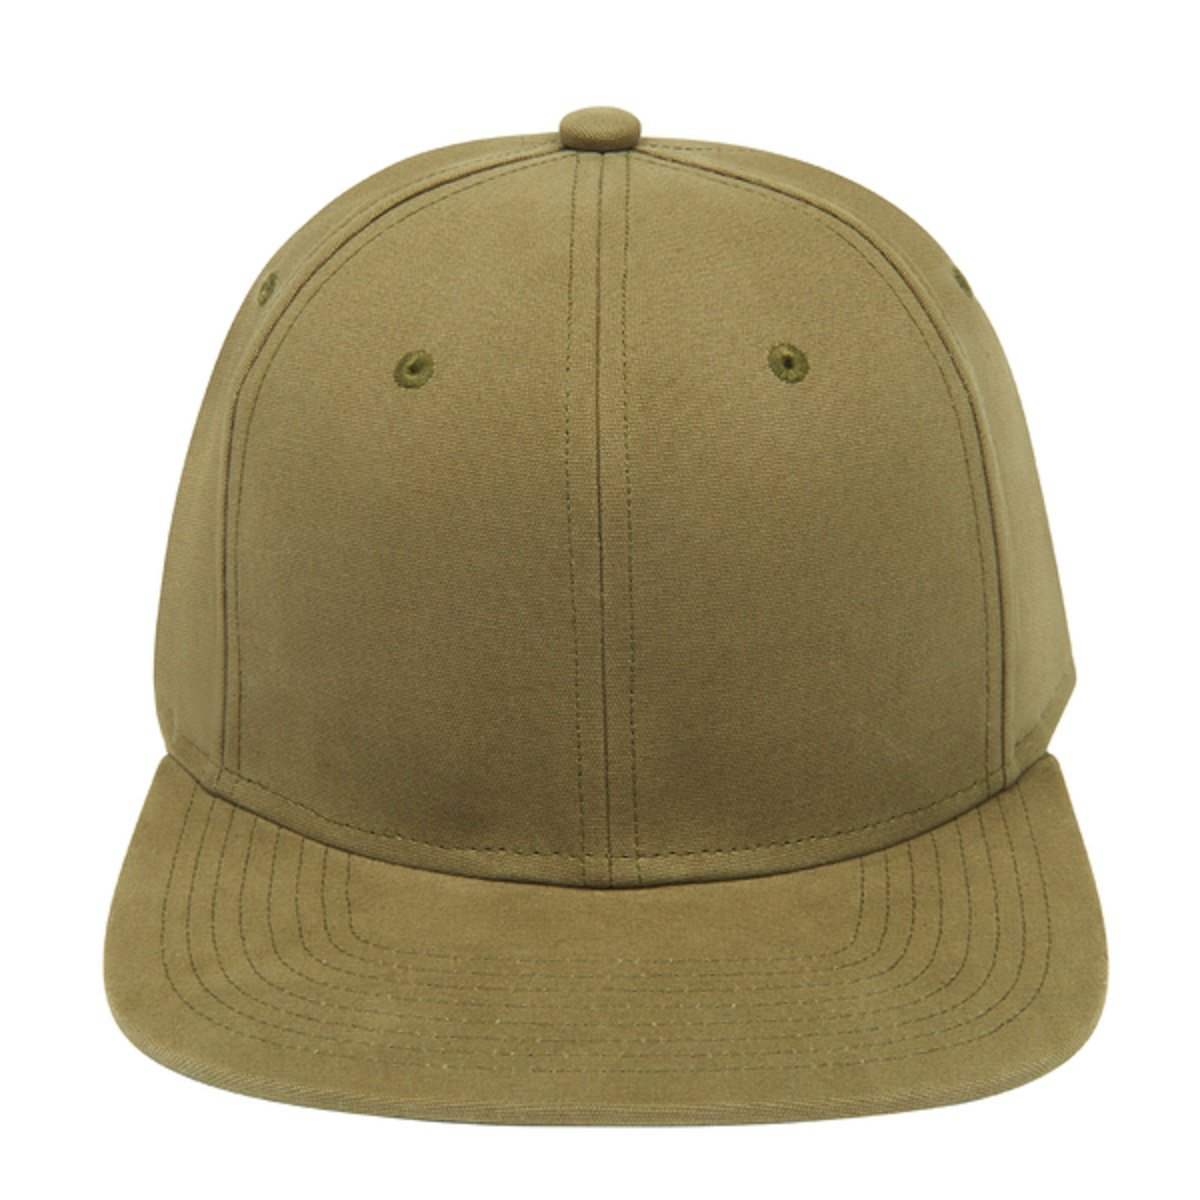 1d5e0b317ff Gents Captain Hat In Olive Green